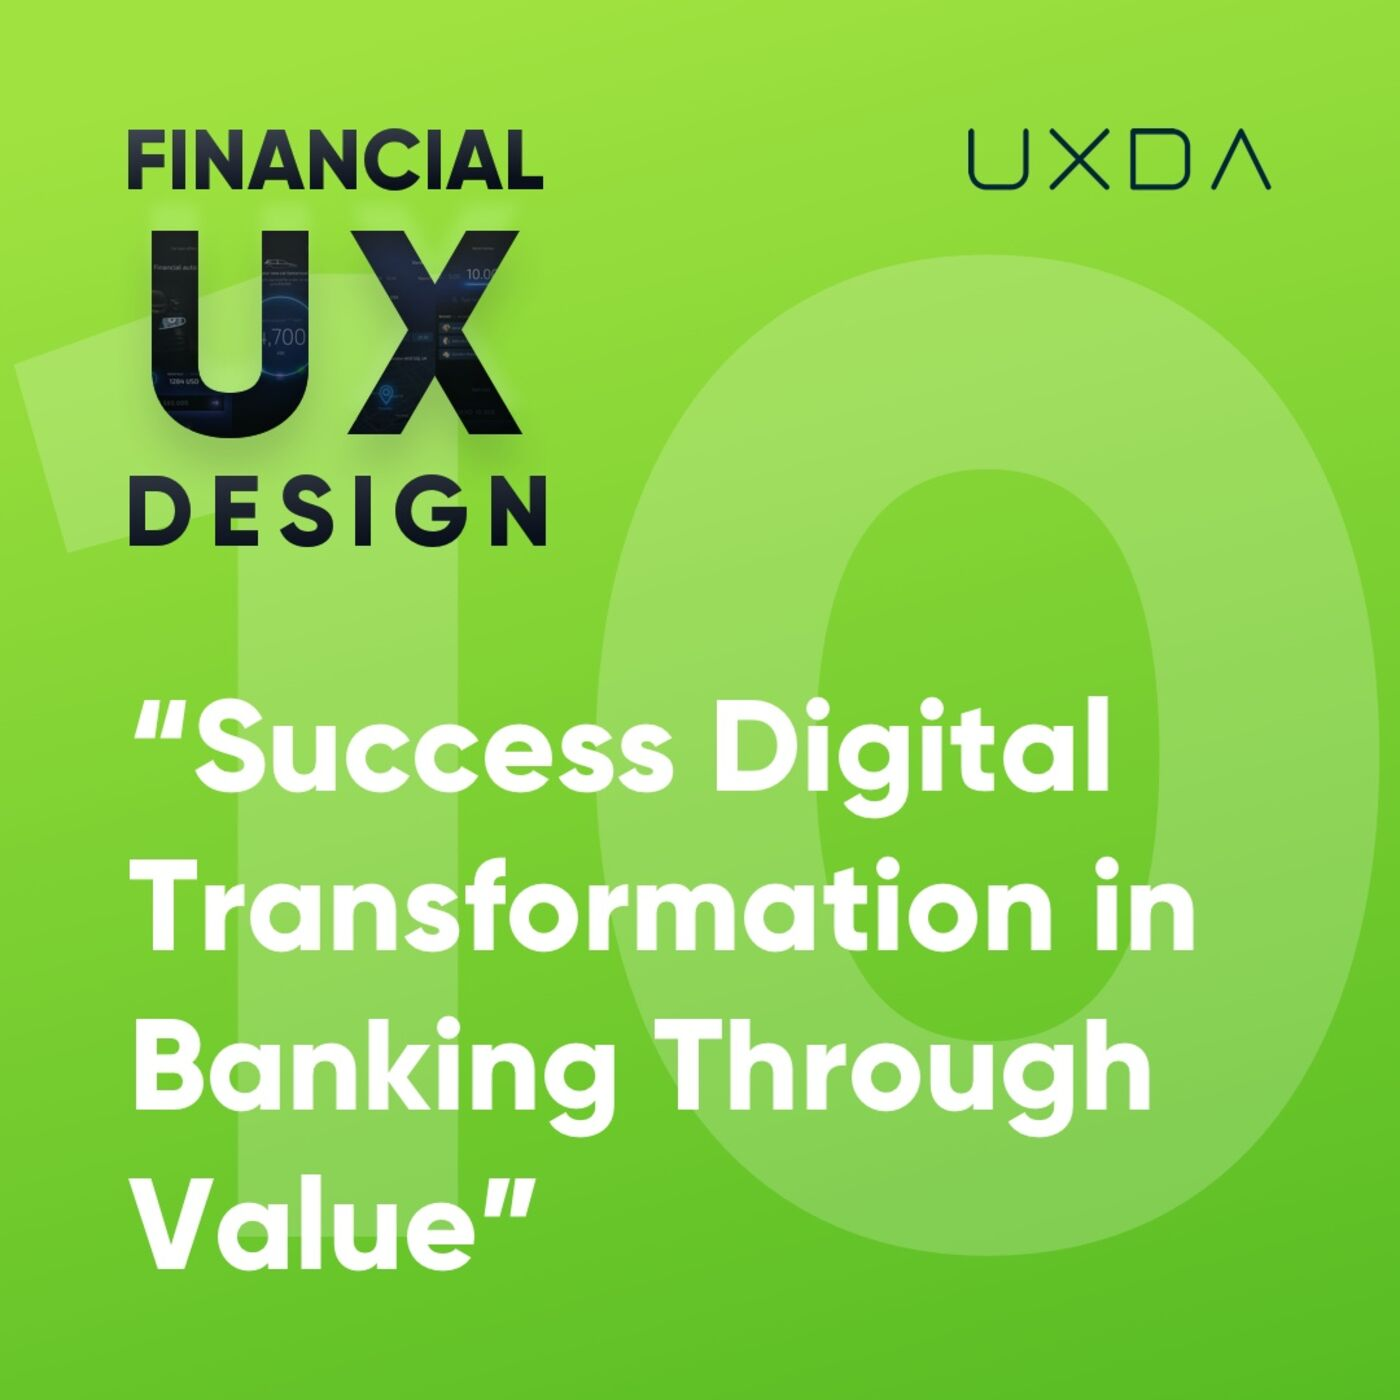 #10 Ensure Successful Digital Transformation in Banking and Fintech Through Value